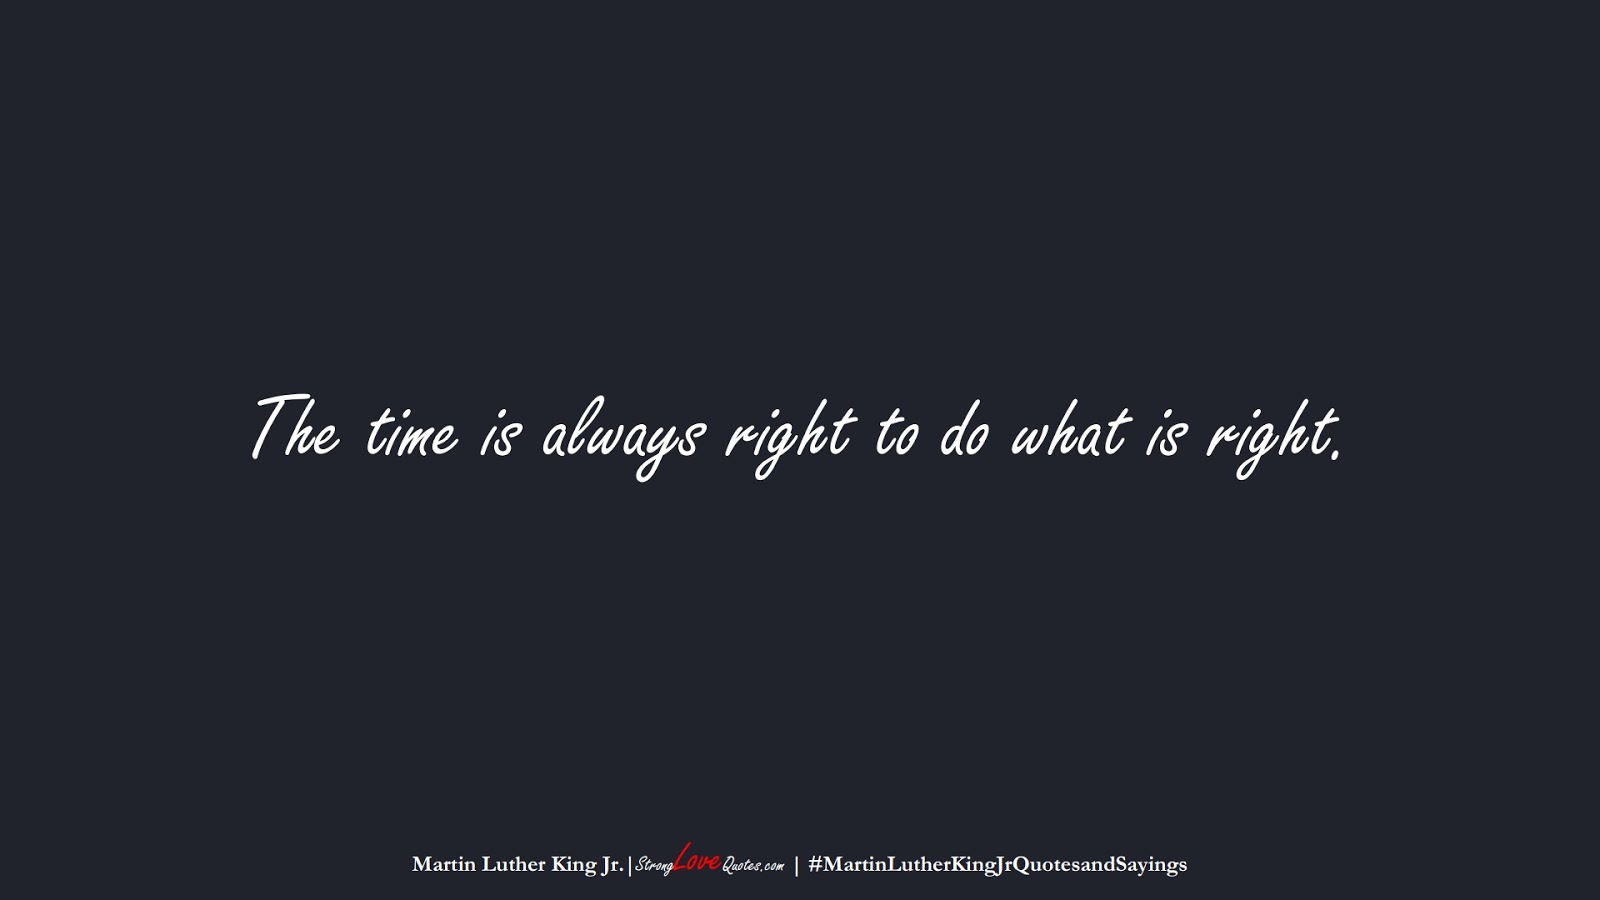 The time is always right to do what is right. (Martin Luther King Jr.);  #MartinLutherKingJrQuotesandSayings